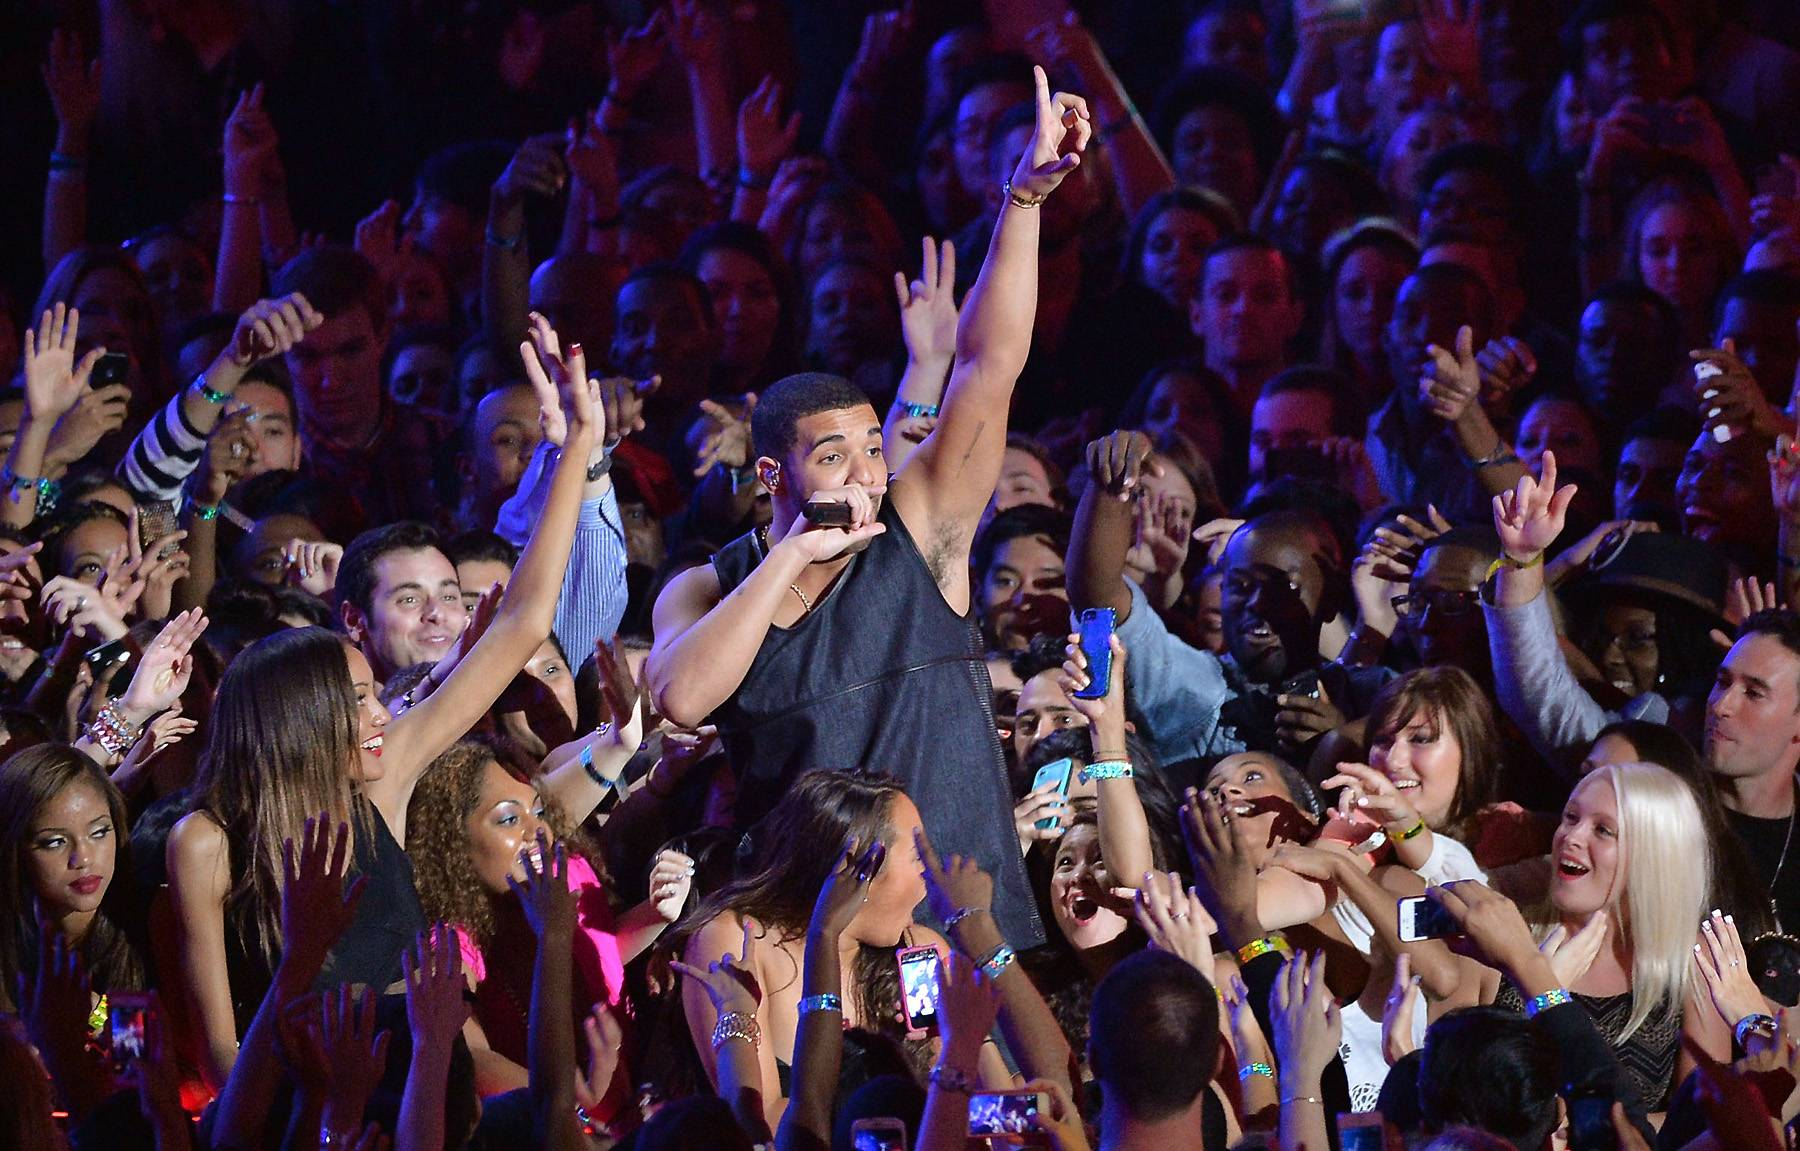 """Drake - A free Drake concert ended before it even began in 2010 at New York's South Street Seaport, when a """"raucous crowd"""" mobbed the scene before Drake even hit the stage. According to fans, it was absolute mayhem as masses of drunk people were pushing to get to the front of the stage, igniting random fist fights throughout the crowd. Not only were fans disappointed when the concert was canceled, Drizzy was sad about it as well. """"I am humbled by the crowd that showed up in support of my performance,"""" he said through his spokeswoman. """"Unfortunately, the show was canceled by the NYPD due to overcrowding, leaving me without the chance to give my fans a real show.""""(Photo: Rick Diamond/Getty Images for MTV)"""